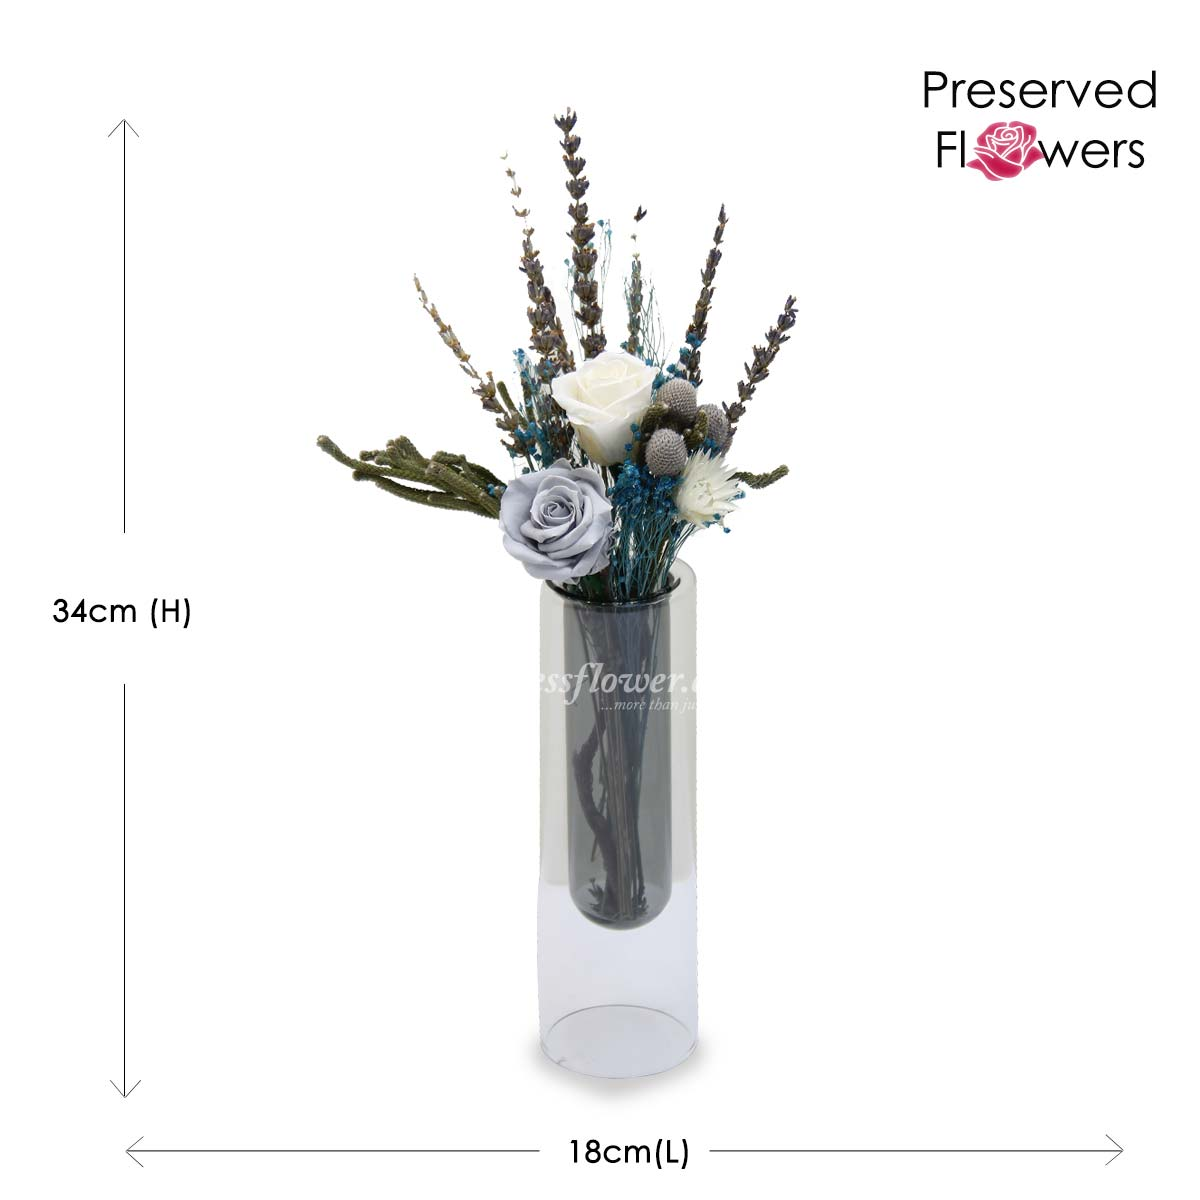 PR2110_Frosted Allure (Mixed Dried & Preserved Flowers)_C